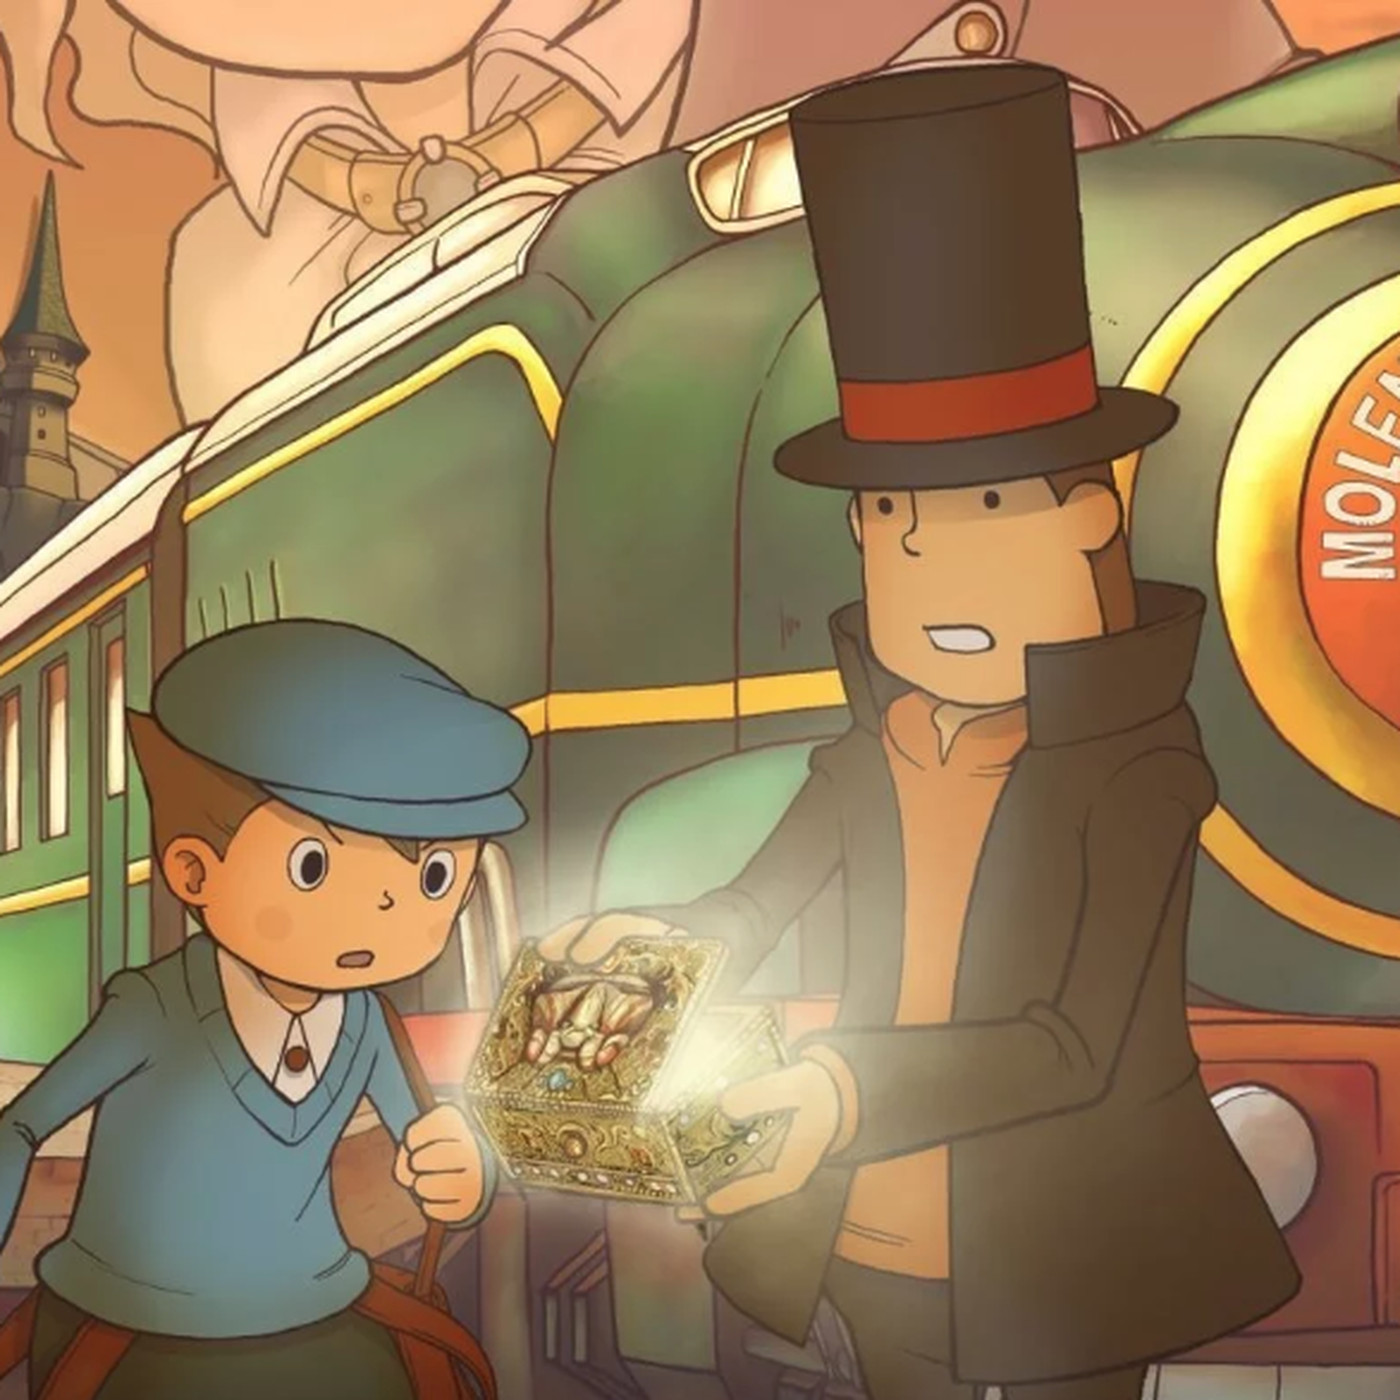 Professor Layton and the Diabolical Box now on mobile in HD - Polygon